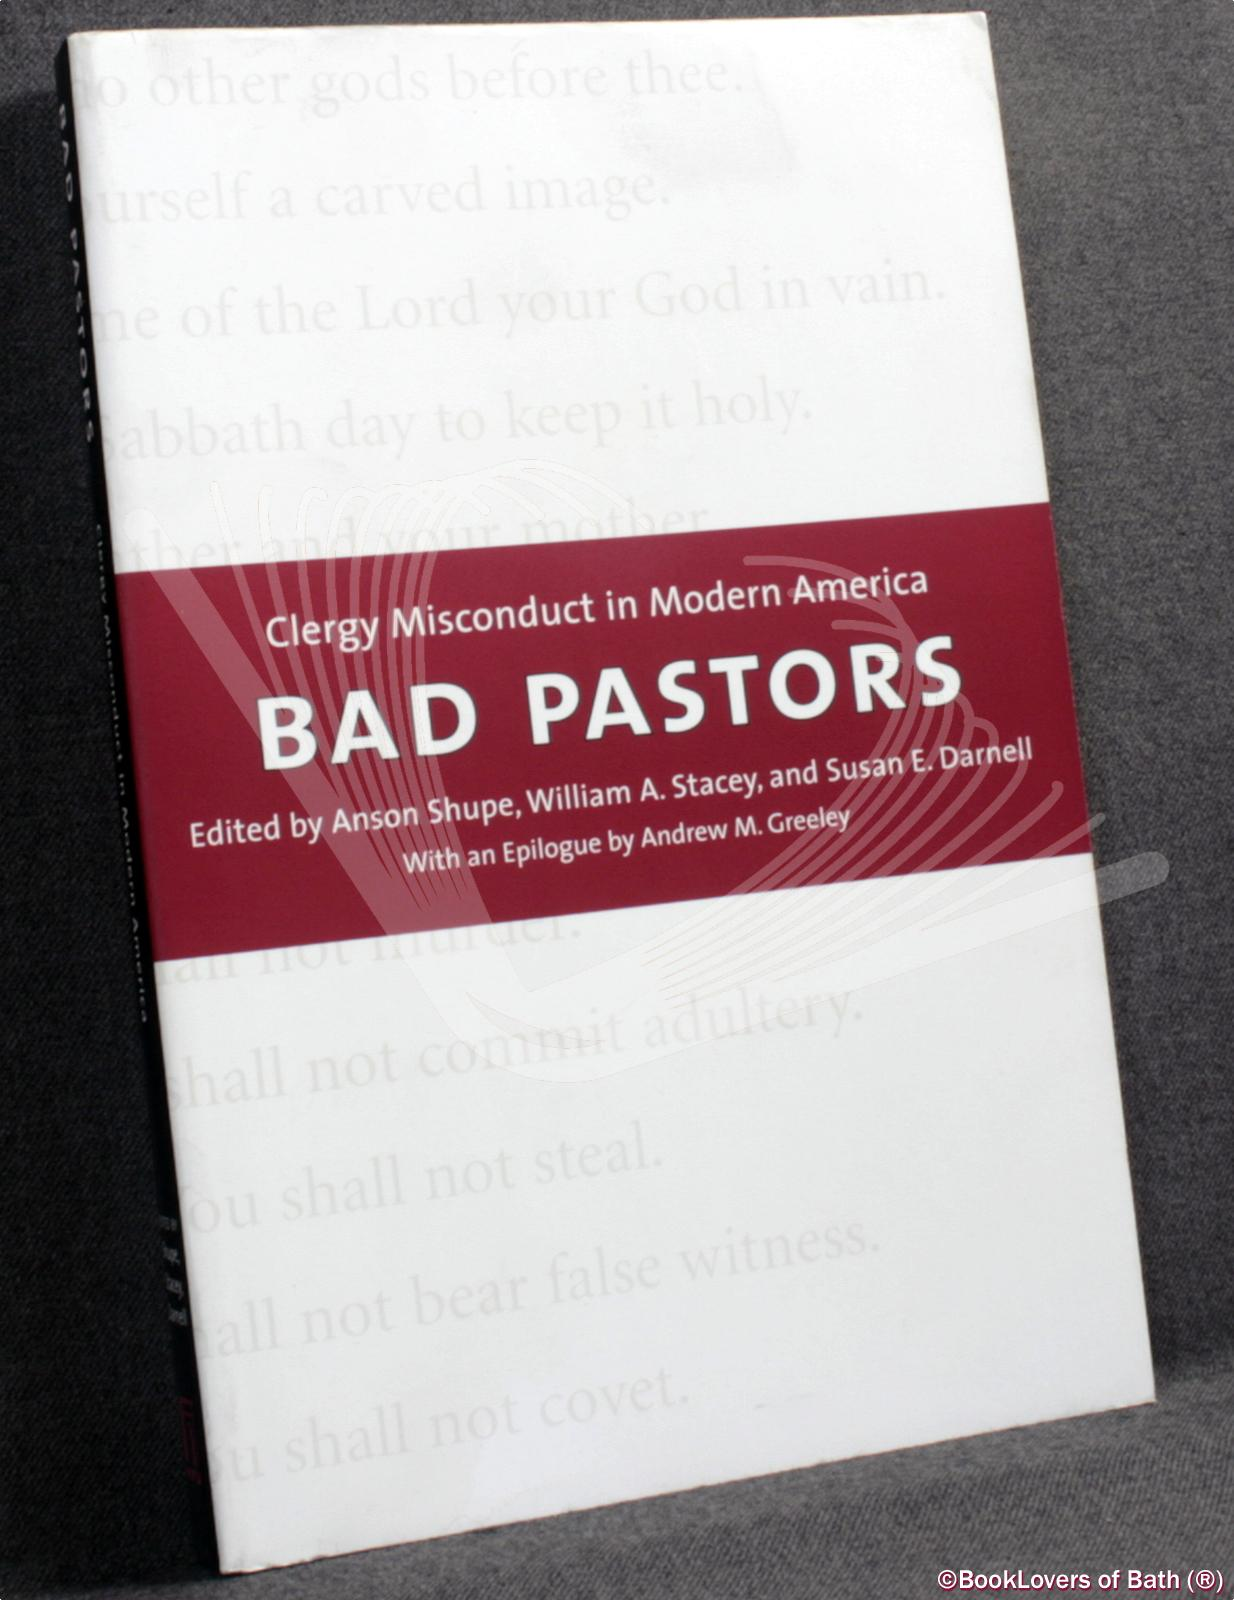 Bad Pastors: Clergy Misconduct in Modern America - Edited by Anson Shupe, William A. Stacey & Susan E. Darnell